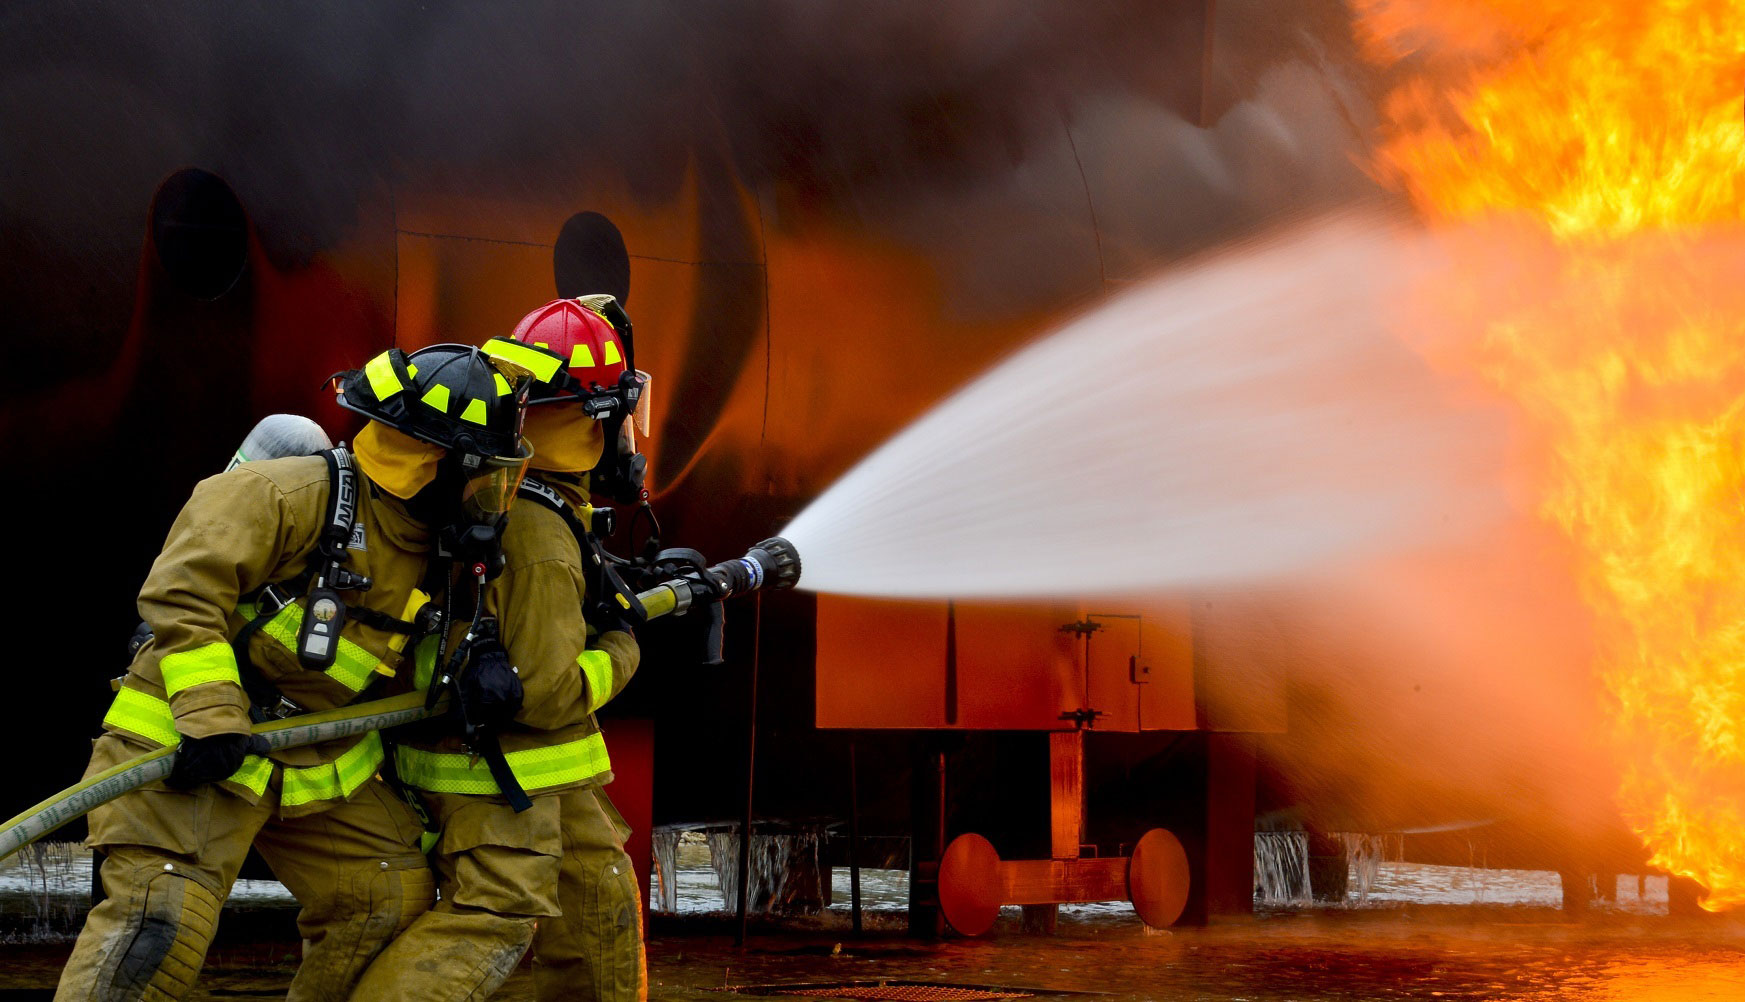 Research Helps Firefighters Stay Safe U Of G News